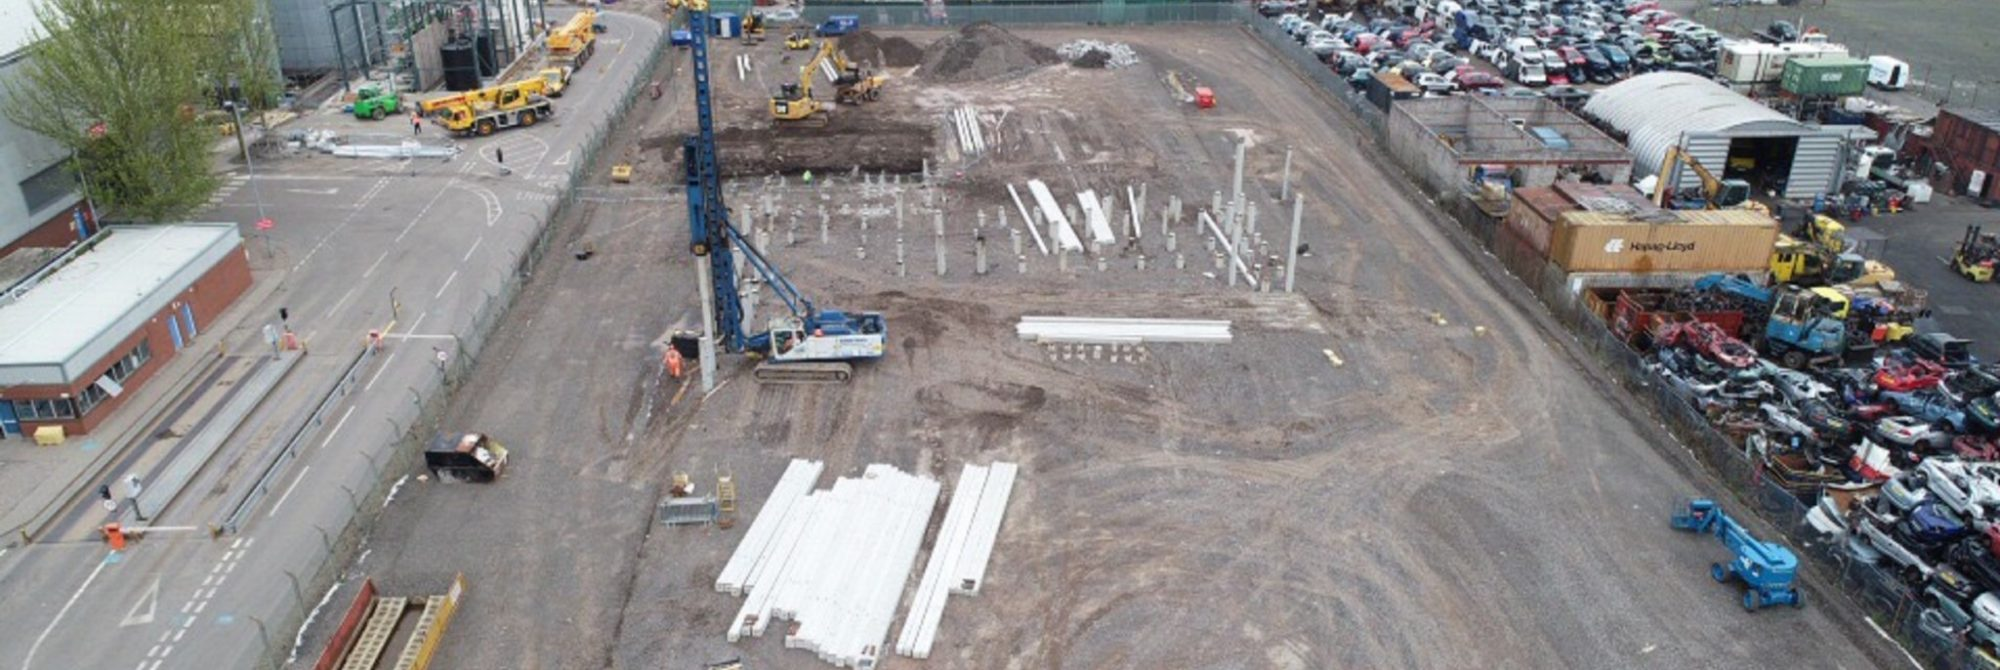 Ground engineering site in Scotland with construction vehicles and materials nearby